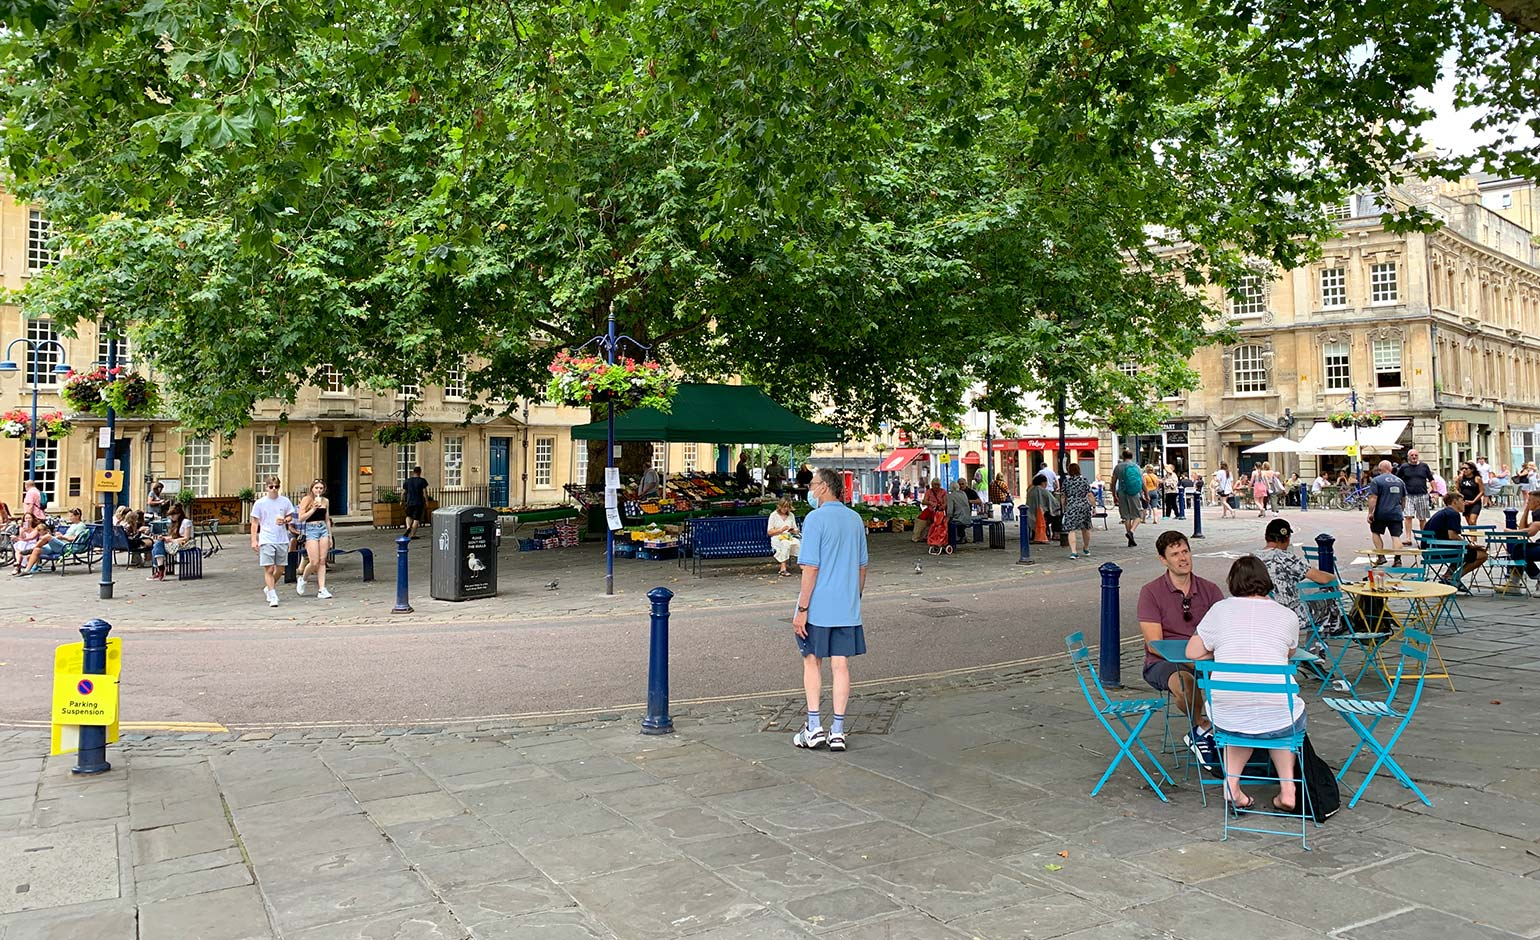 Pedestrianisation welcomed as Kingsmead Square businesses start to recover